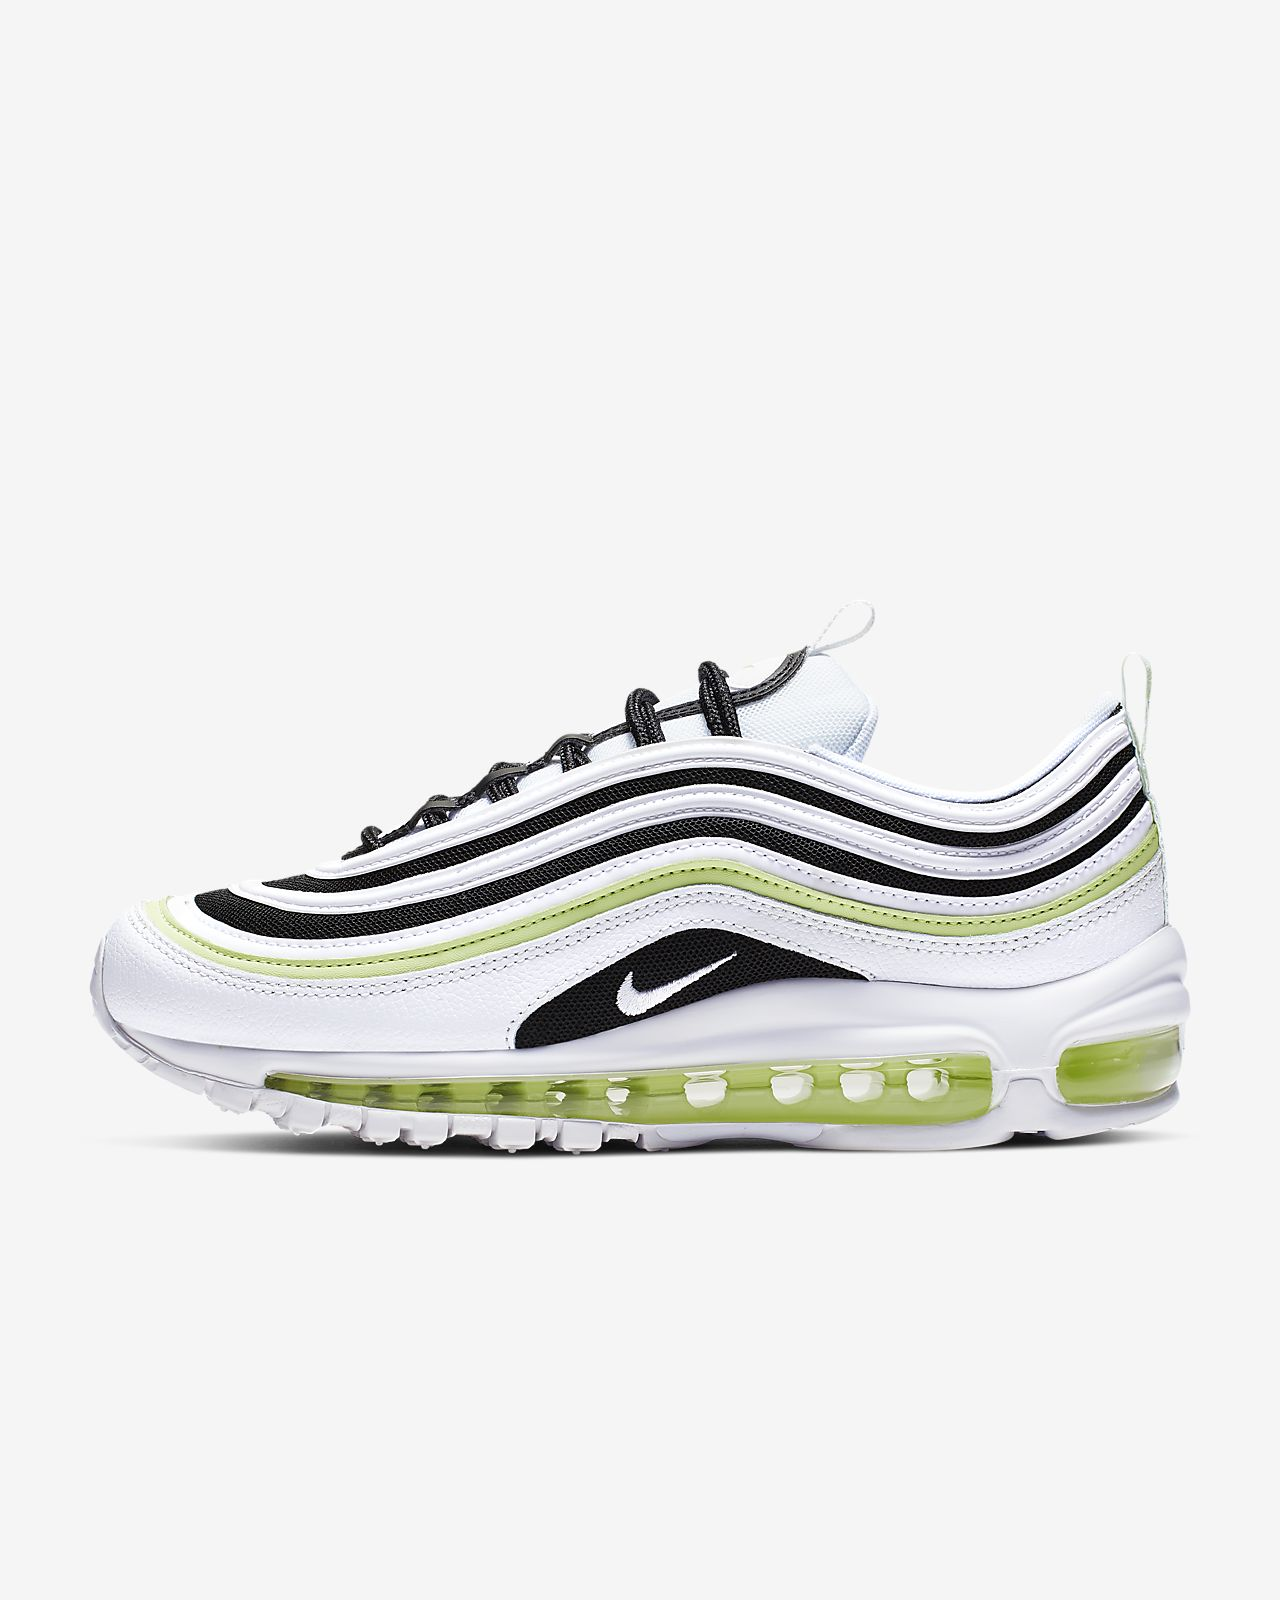 NIKE Air Max 97 € 90 Low Sneakers | Graffitishop